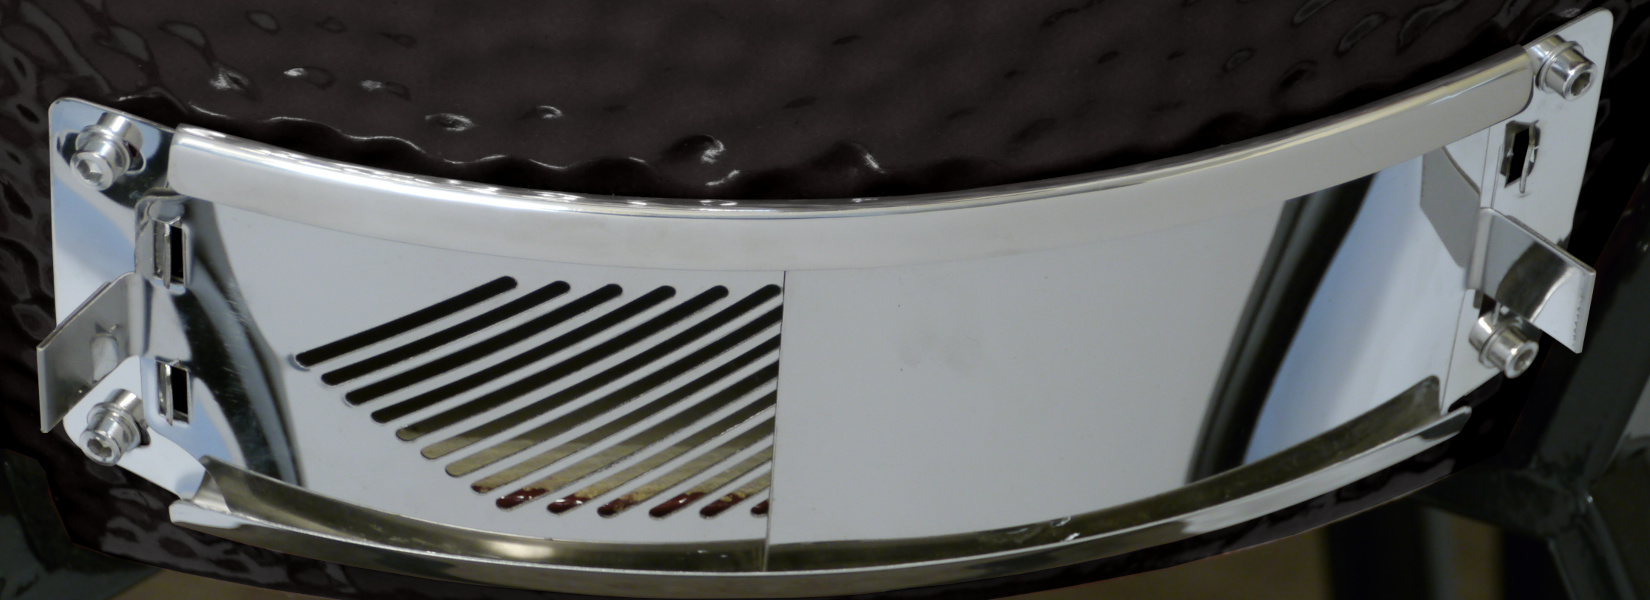 The grill's ash vent is fully open, with the ash guard closed.